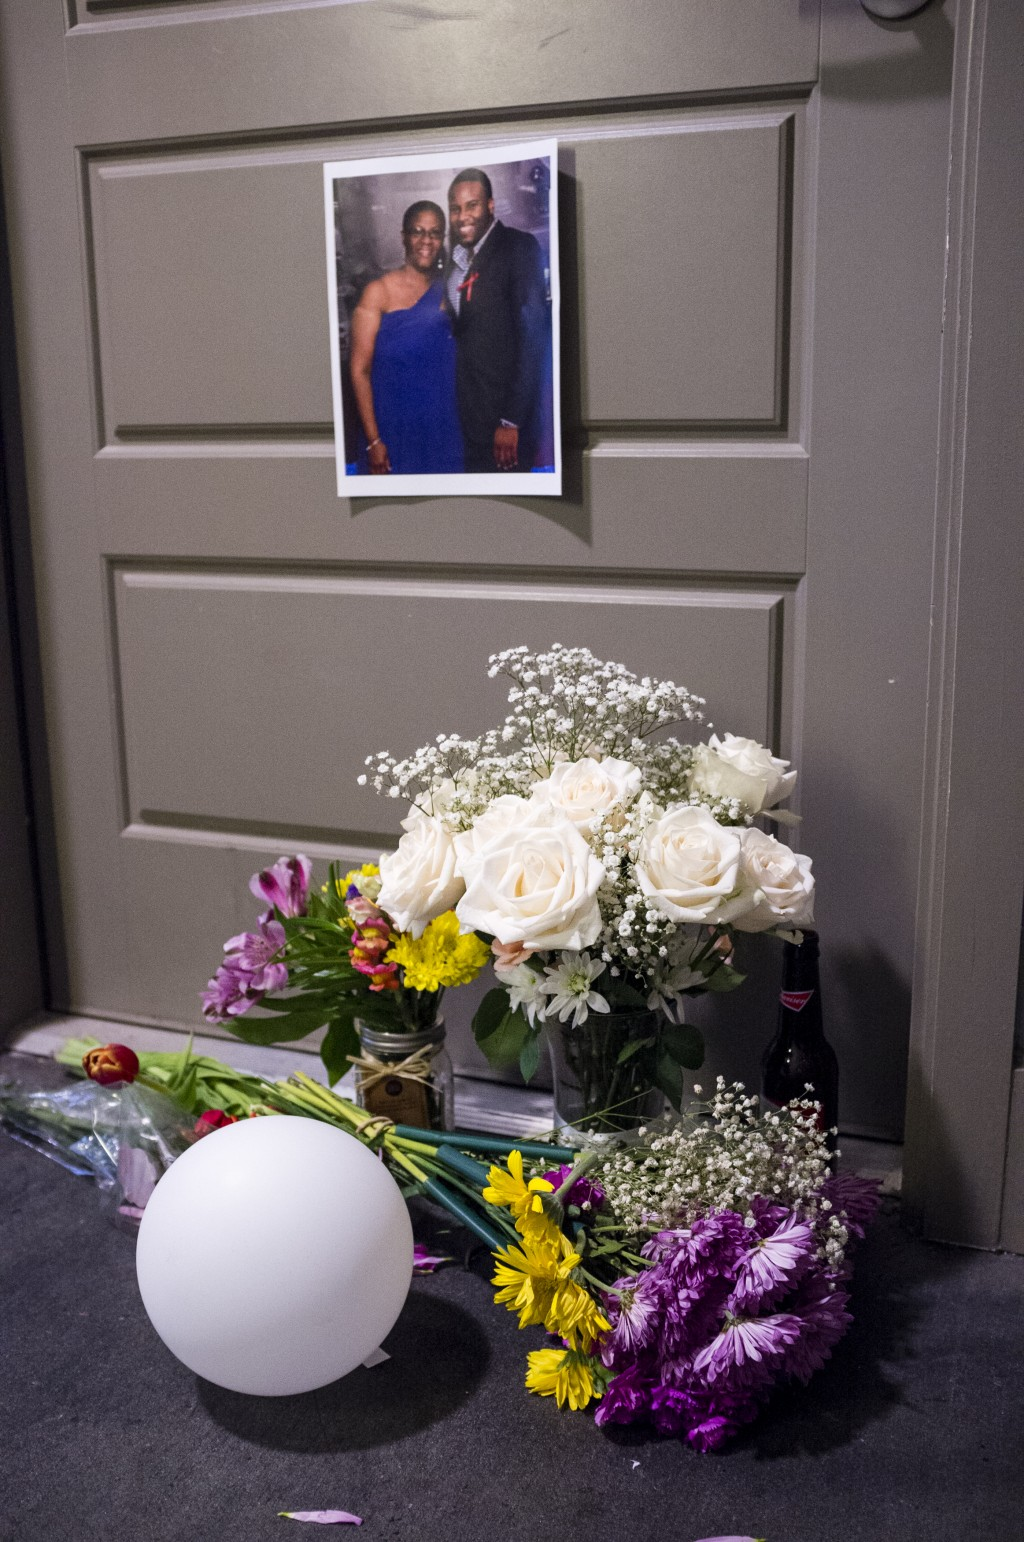 Flowers are placed at the front door of Botham Jean's apartment on Monday, Sept. 10, 2018 in Dallas. Jean was shot Thursday by off-duty Dallas police